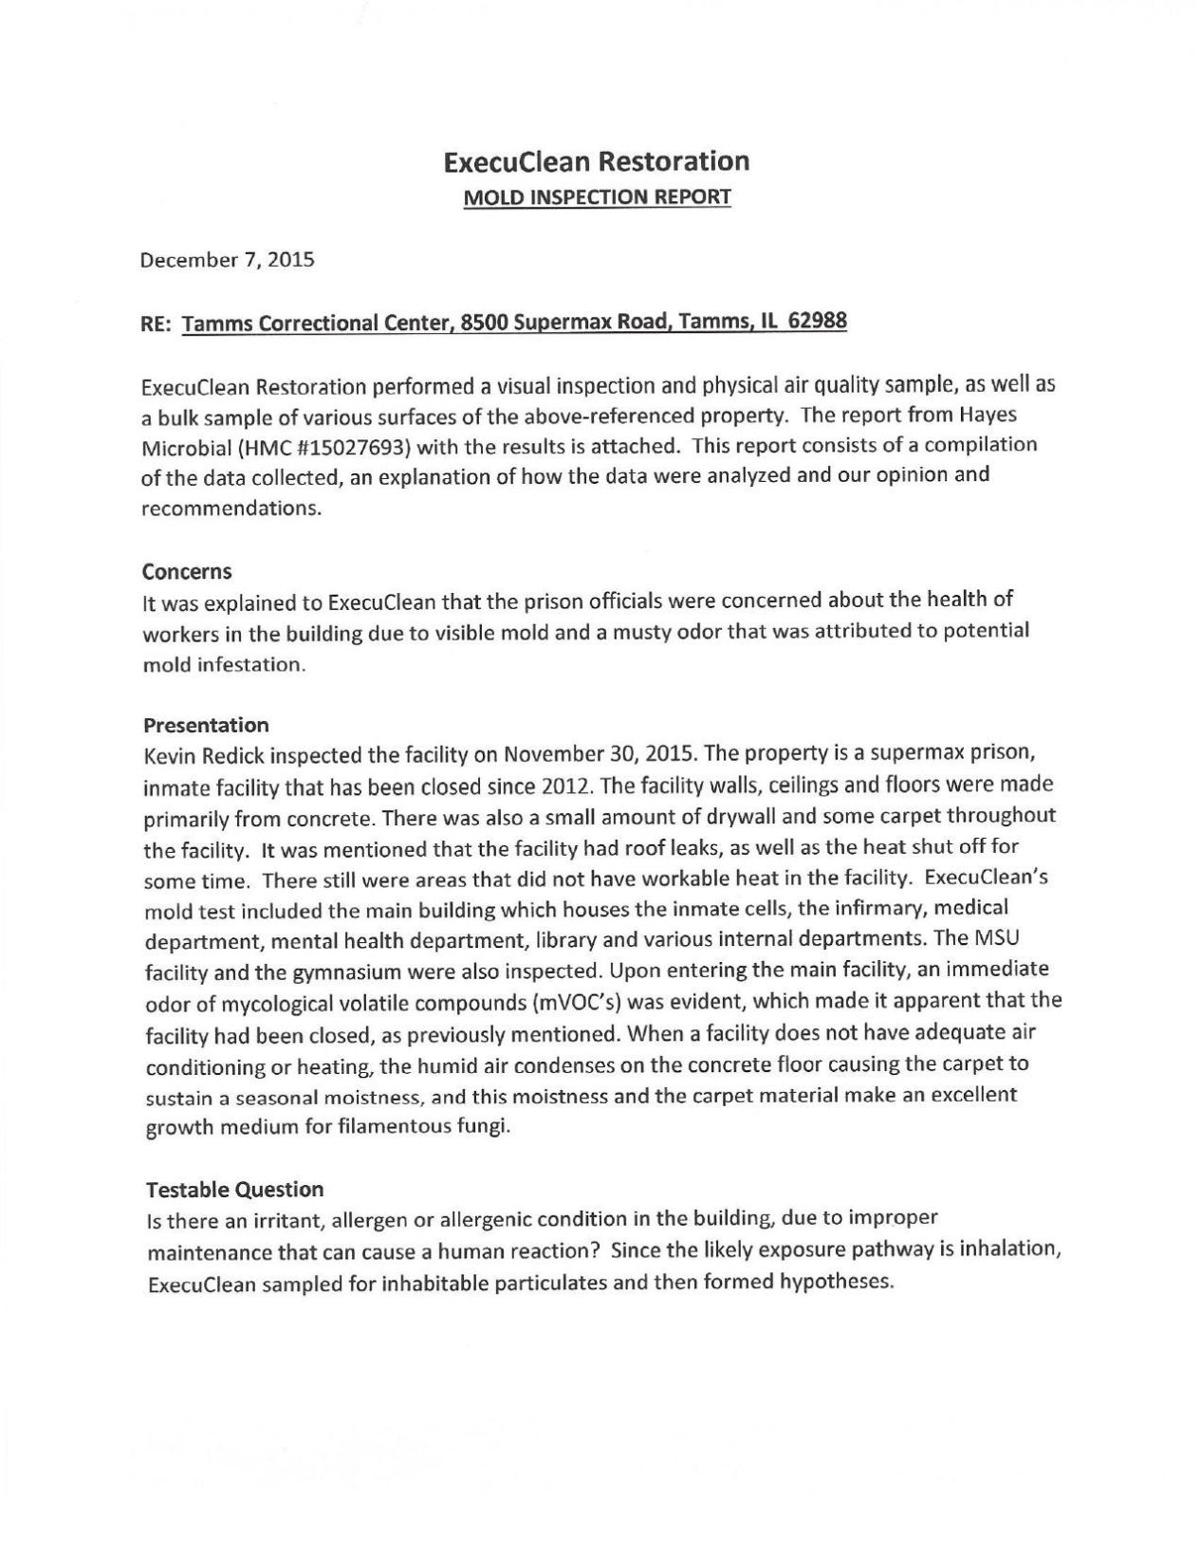 See the document: ExecuClean Mold Report for Tamms prison